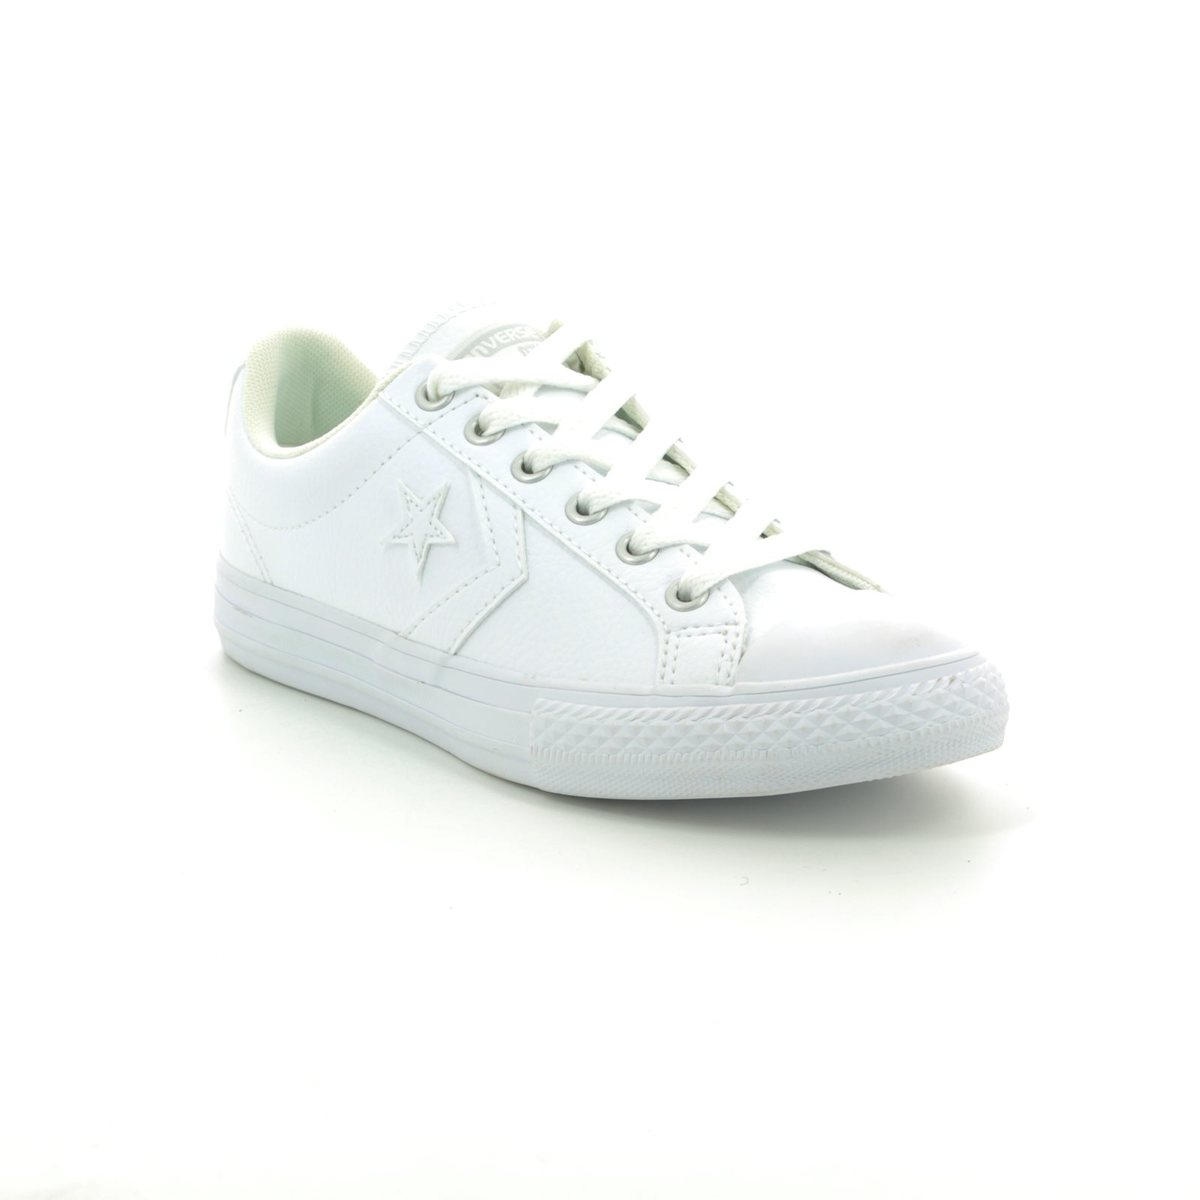 69c879d9b3ae Converse Trainers - White - 651827C 100 Star Player EV OX White